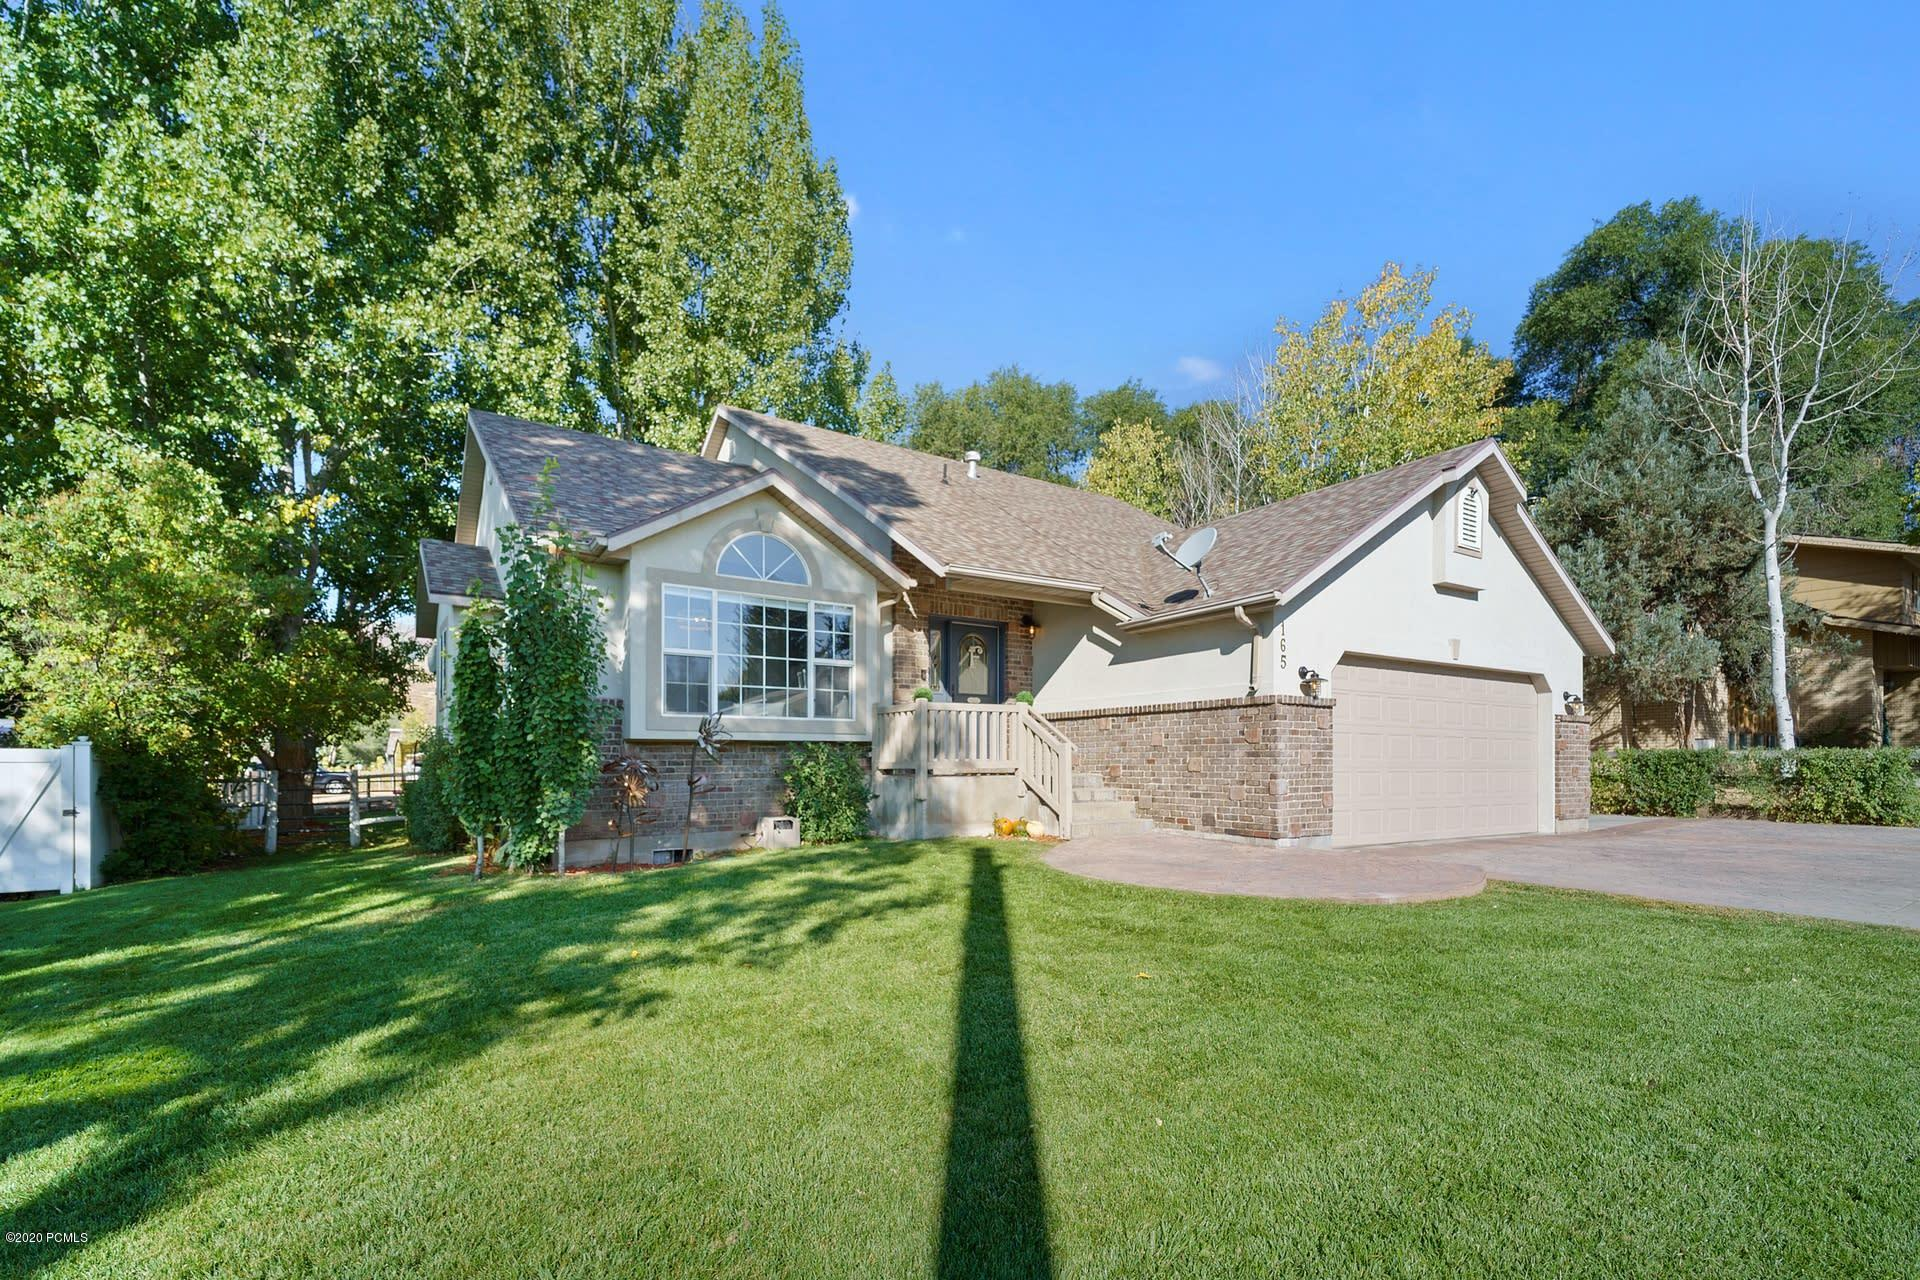 165 200, Midway, Utah 84049, 4 Bedrooms Bedrooms, ,3 BathroomsBathrooms,Single Family,For Sale,200,12003878